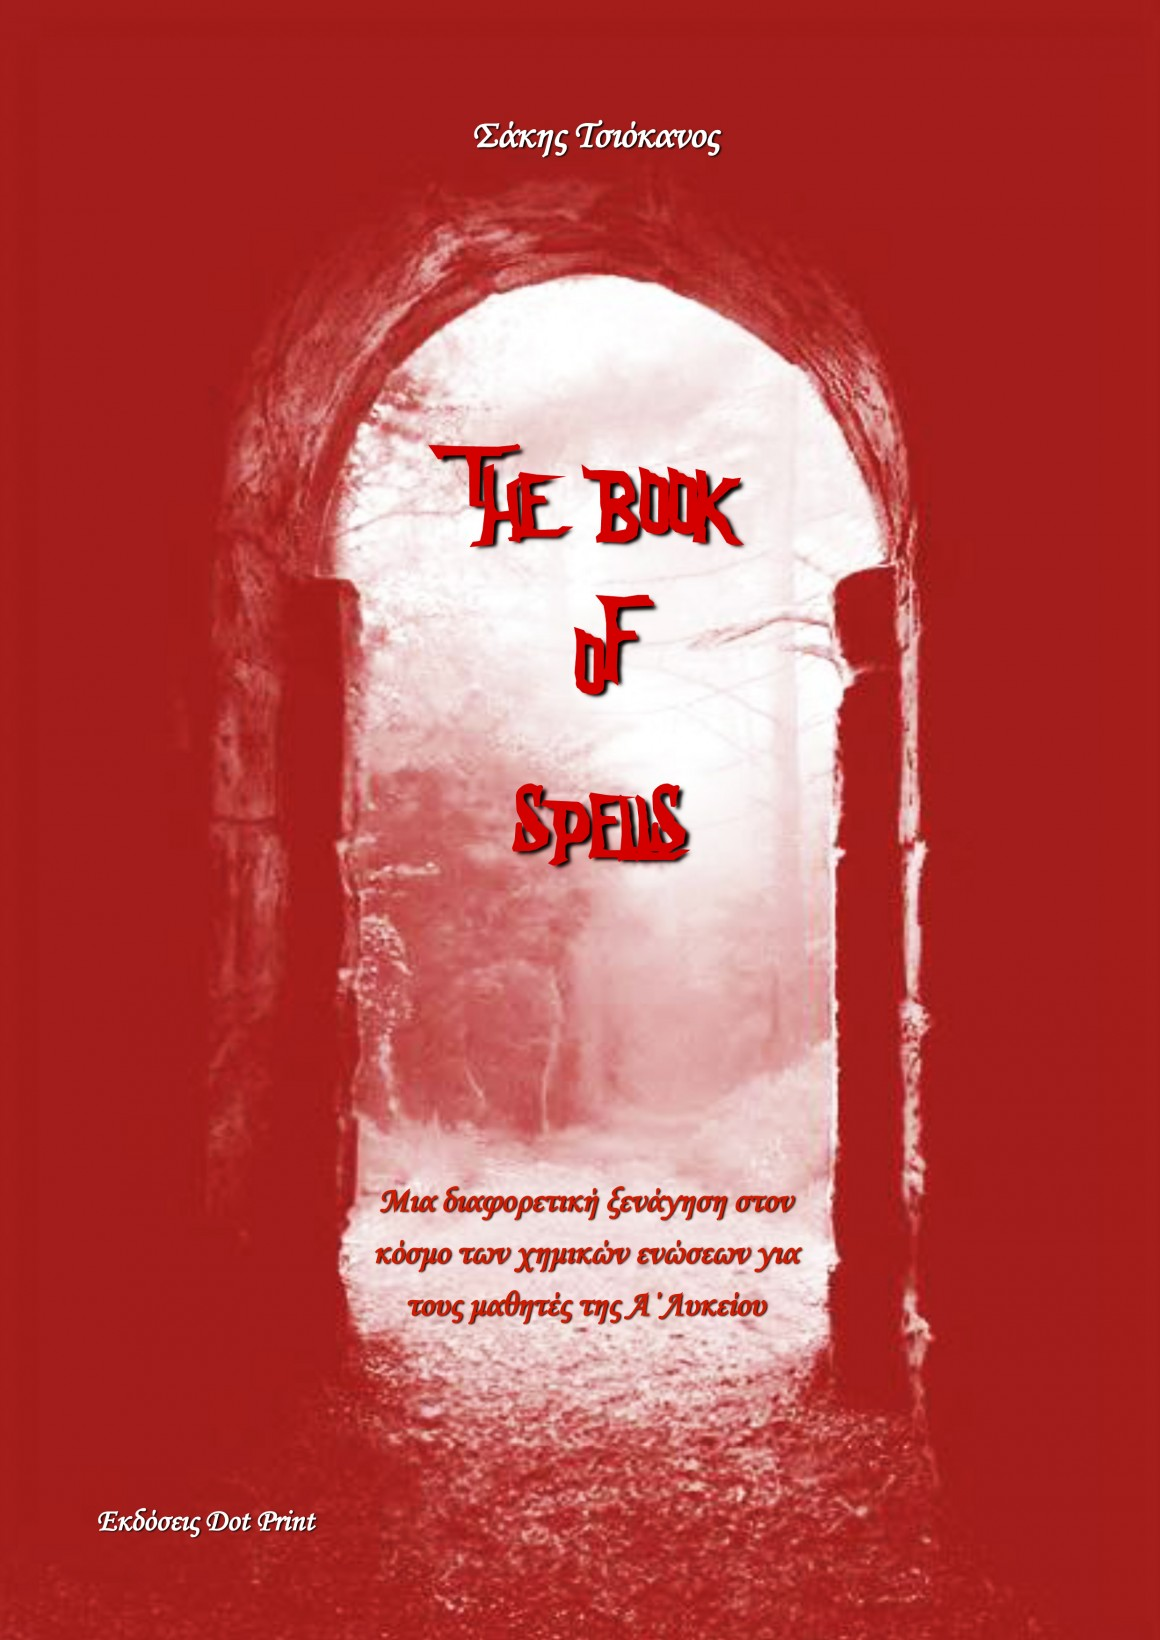 The book of spells cover